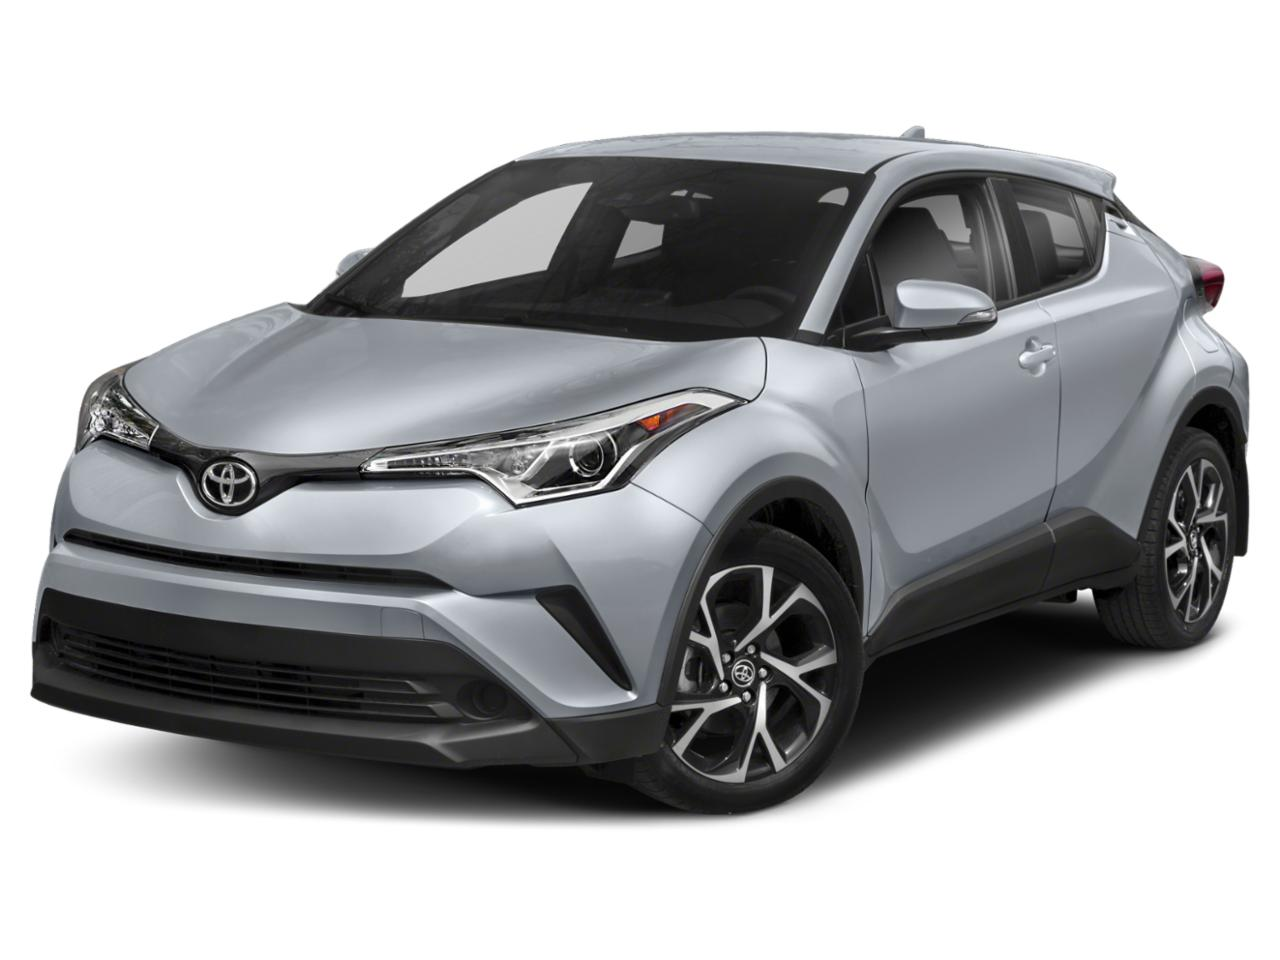 2018 Toyota C-HR Vehicle Photo in Trevose, PA 19053-4984